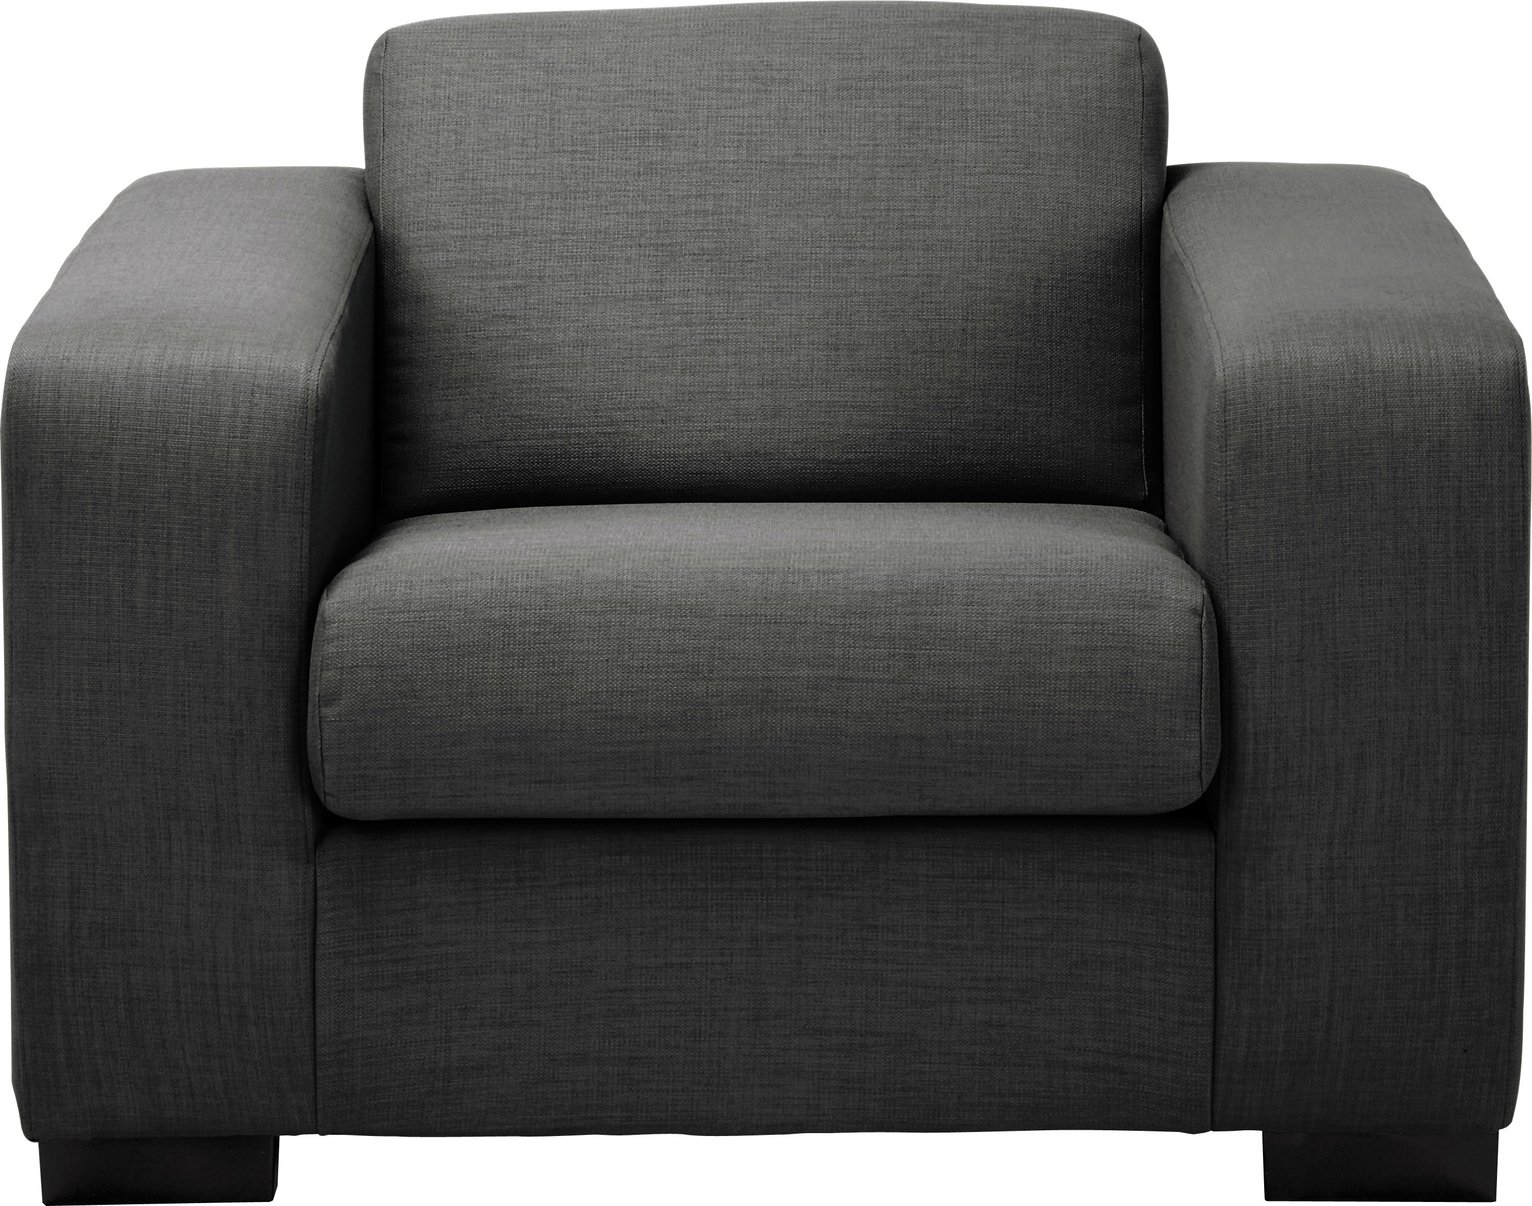 Argos Home Ava Fabric Armchair - Charcoal